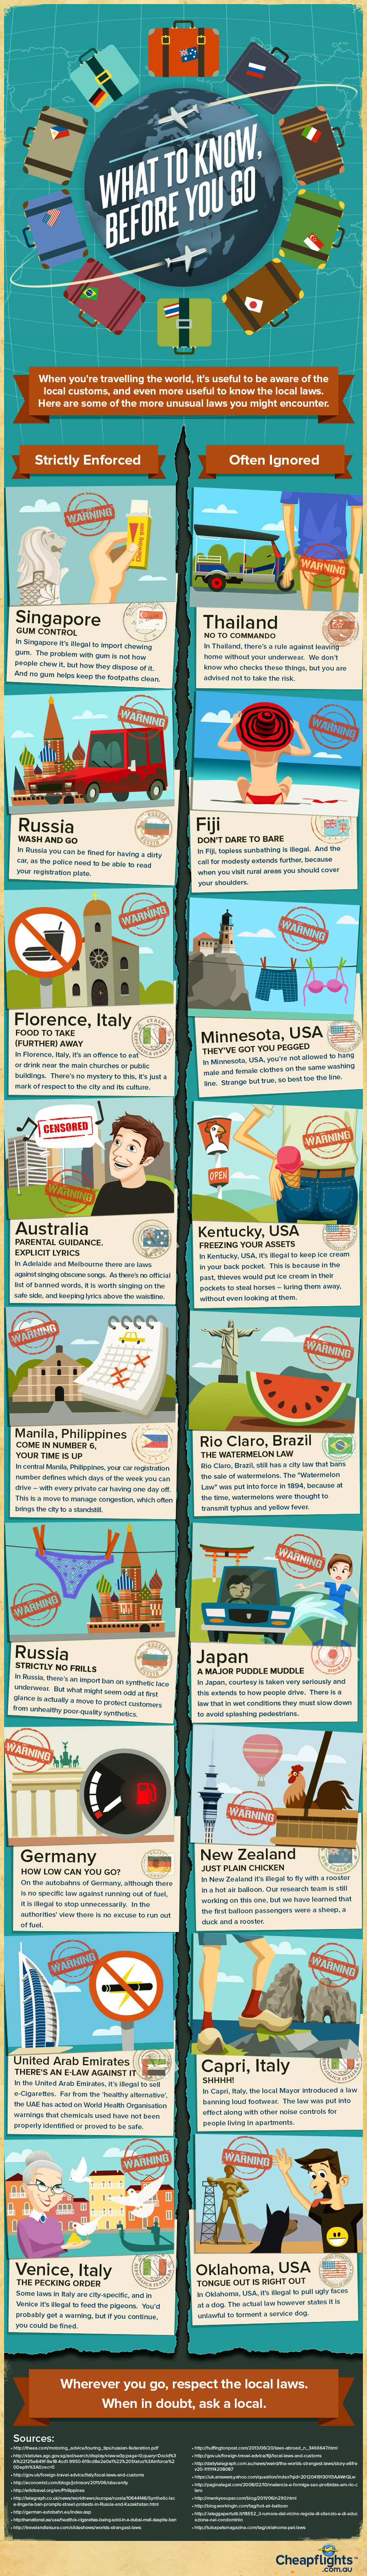 strange-laws-from-around-the-world-infographic-01